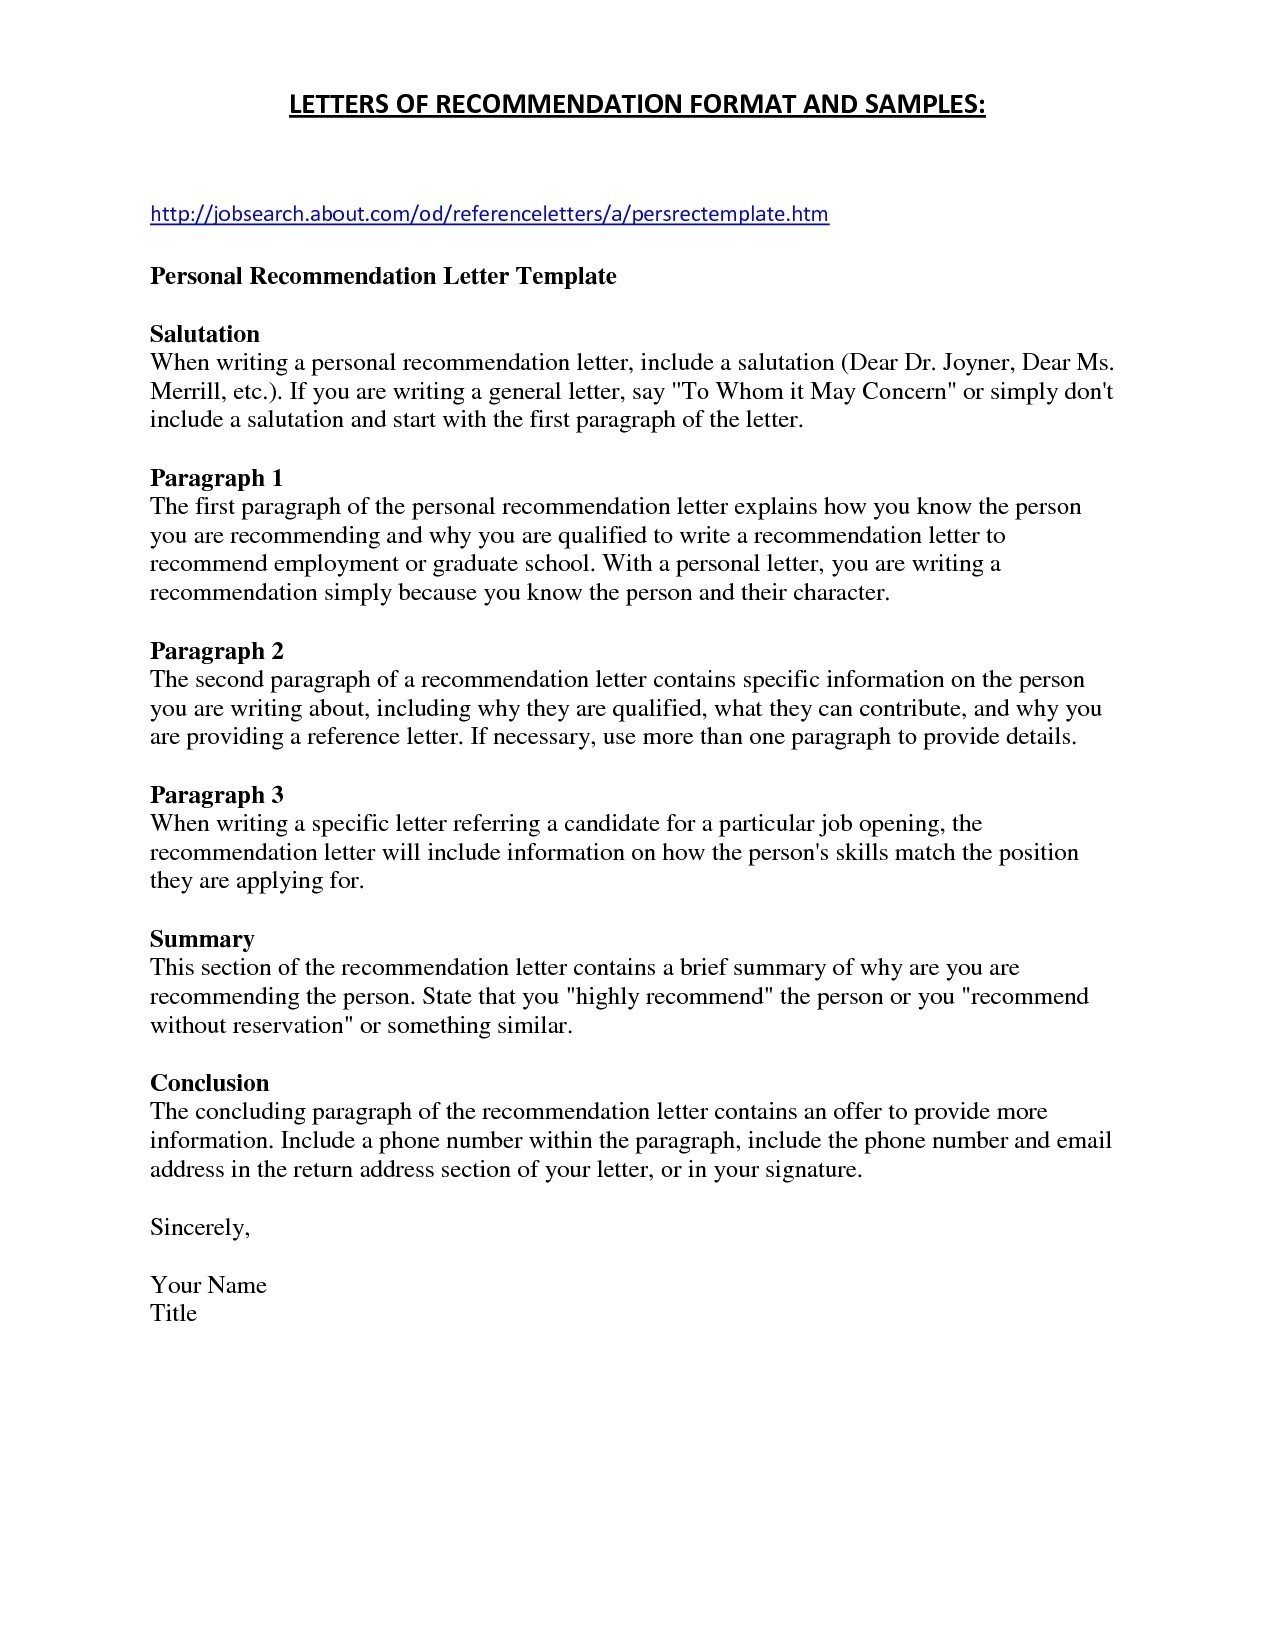 Personal Recommendation Letter Template - Template for Letter Re Mendation for A Job New Letter Re